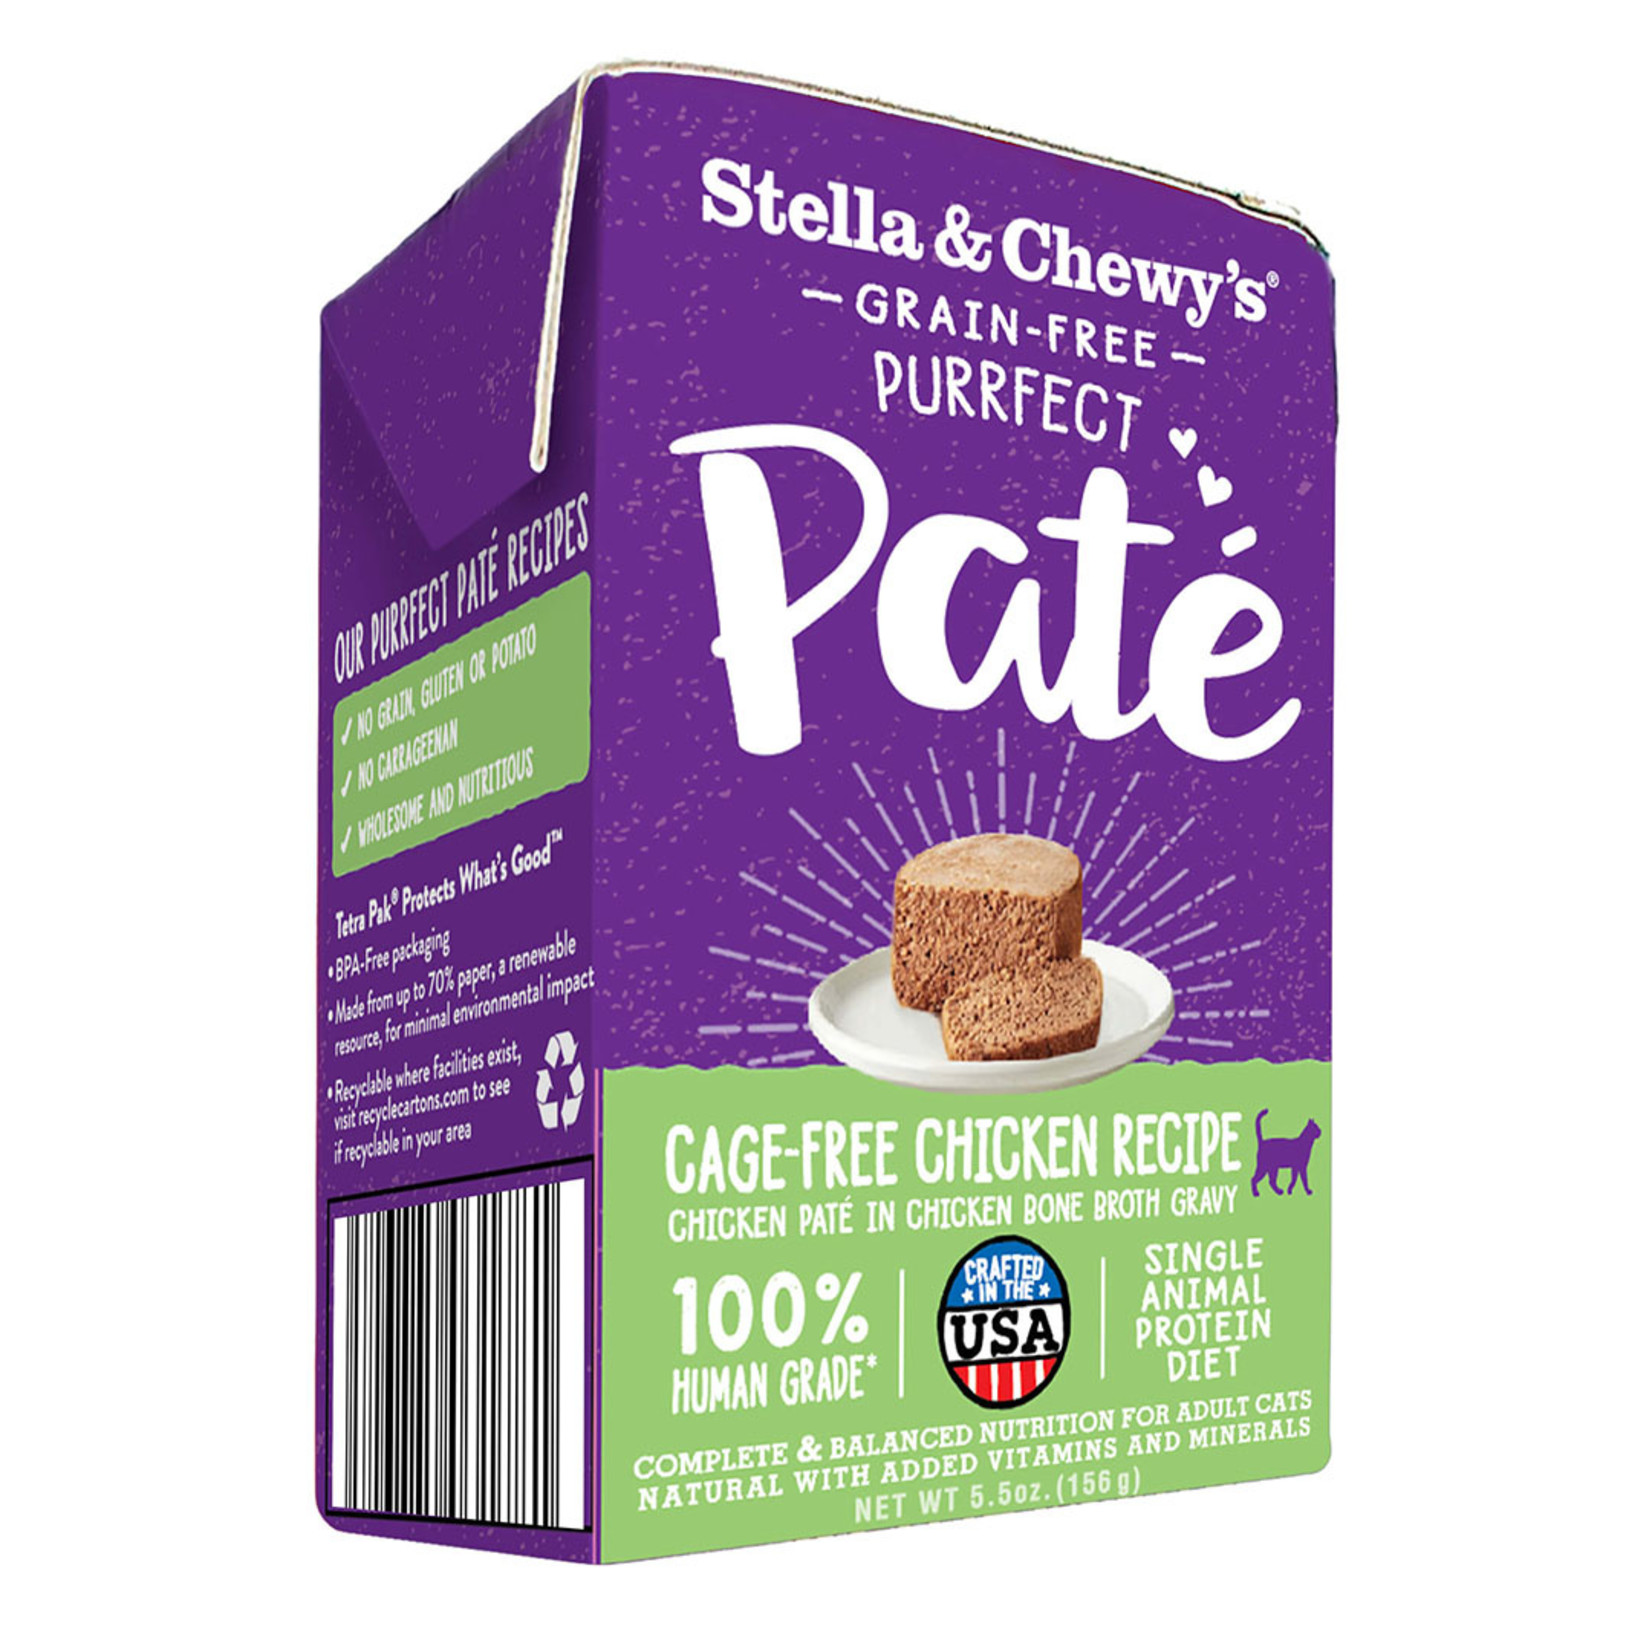 Stella & Chewys Stella & Chewy's Purrfect Pate Cage-Free Chicken Canned Cat Food 5.5oz  - FINAL SALE - No returns/exchanges